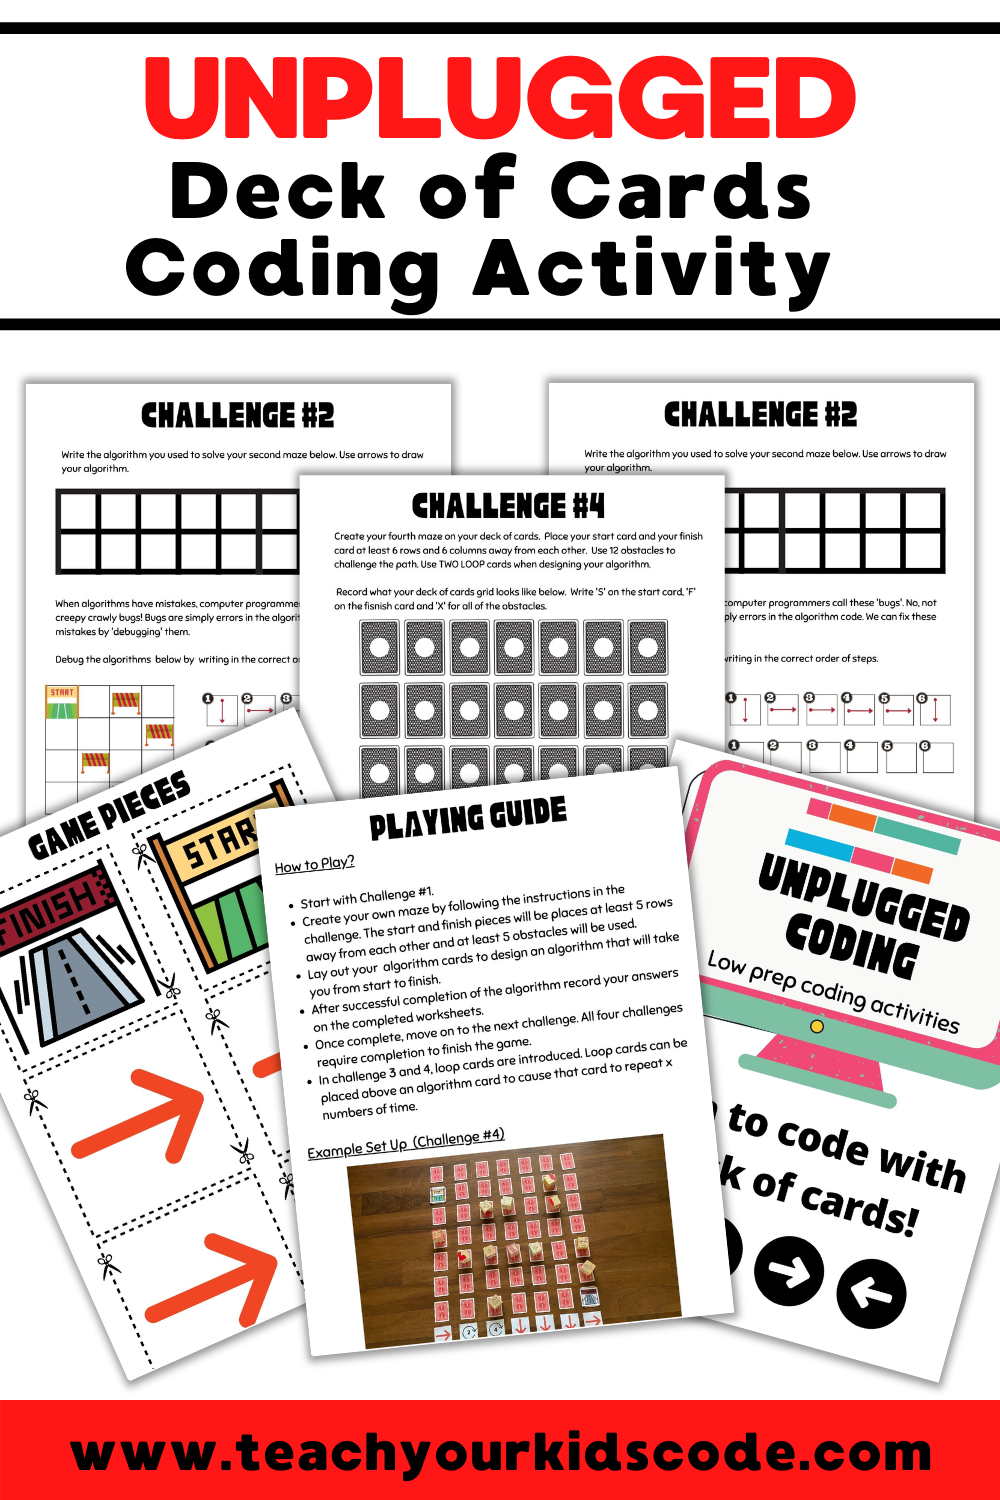 Unplugged Coding Activity In 2021 Unplugged Coding Activities Teaching Coding Classroom Coding [ 1500 x 1000 Pixel ]